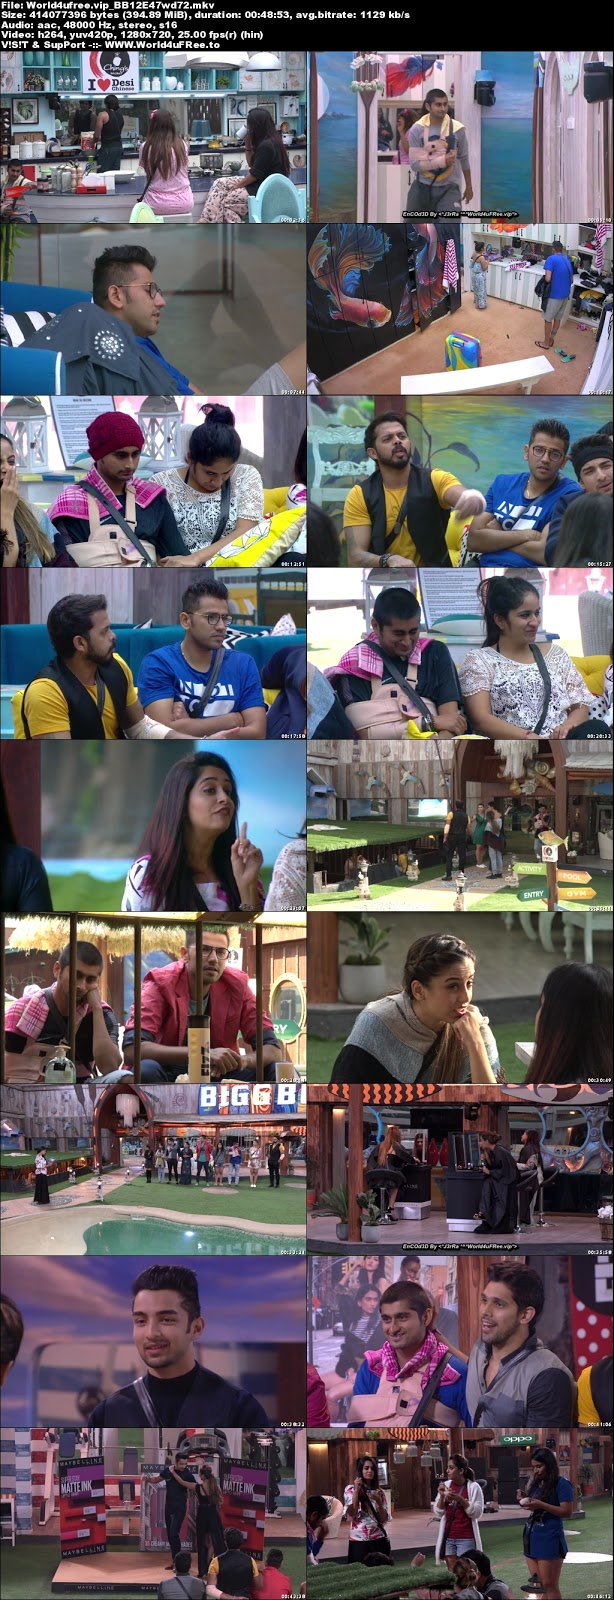 Bigg Boss 12 Episode 47 02 November 2018 720p WEBRip 350Mb x264 world4ufree.fun tv show Episode 47 02 november 2018 world4ufree.fun 300mb 250mb 300mb compressed small size free download or watch online at world4ufree.fun